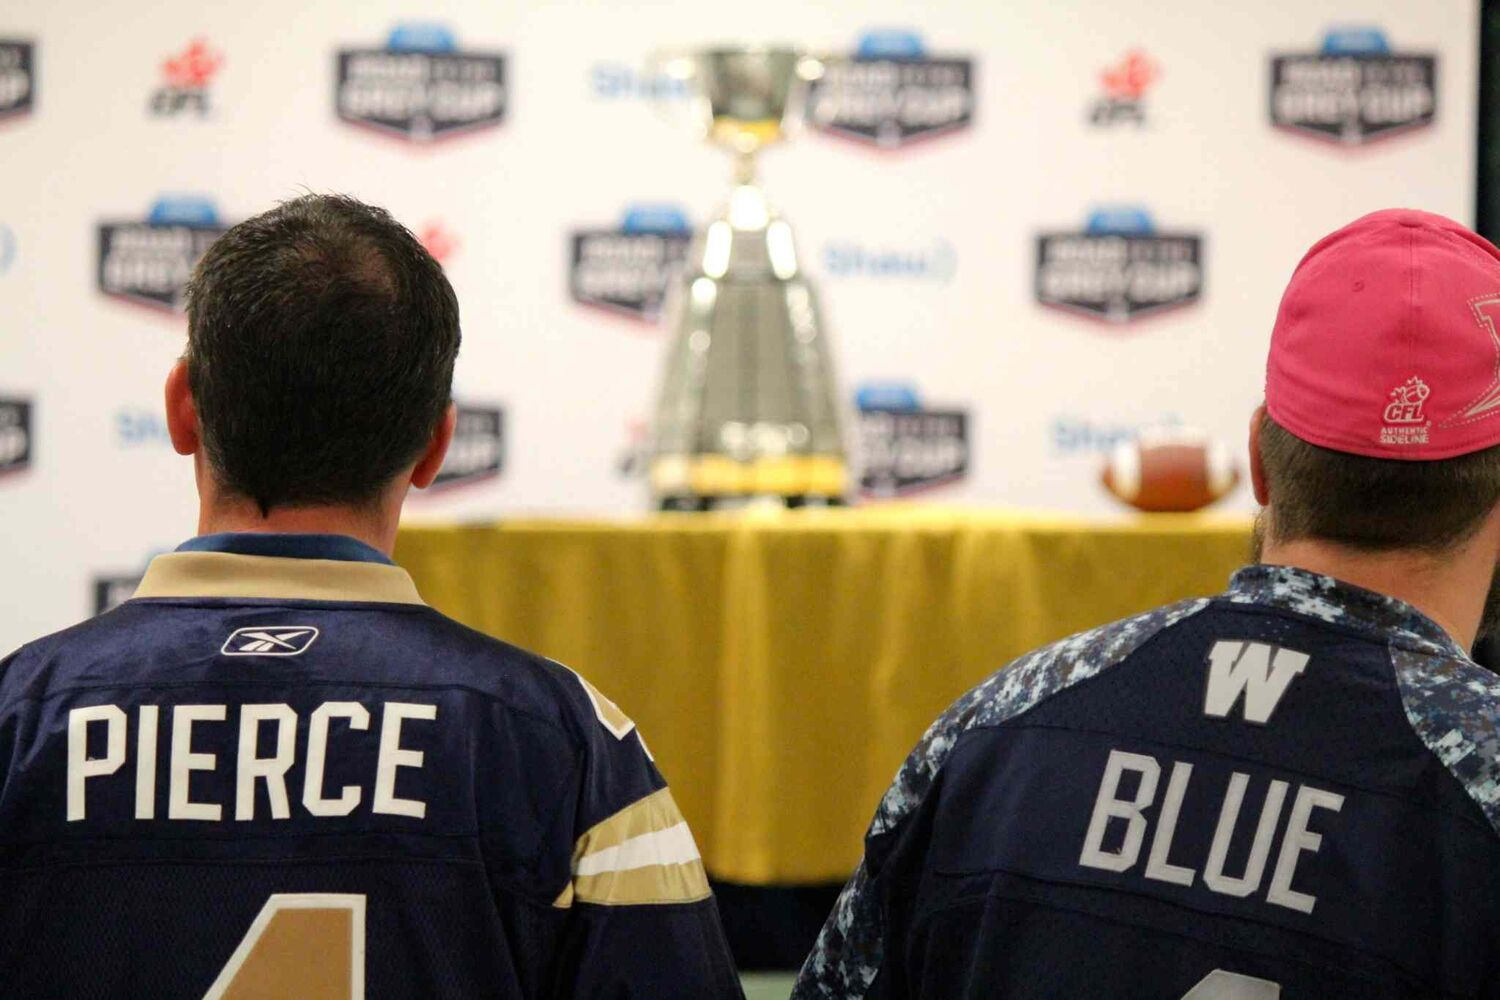 Two Bombers fans gaze at the Grey Cup from a distance in an event at The Pas. The trophy was in town as part of an eight-day tour through northern Manitoba to help promote the Grey Cup game in Winnipeg this year. (Jeff Hamilton / Winnipeg Free Press)